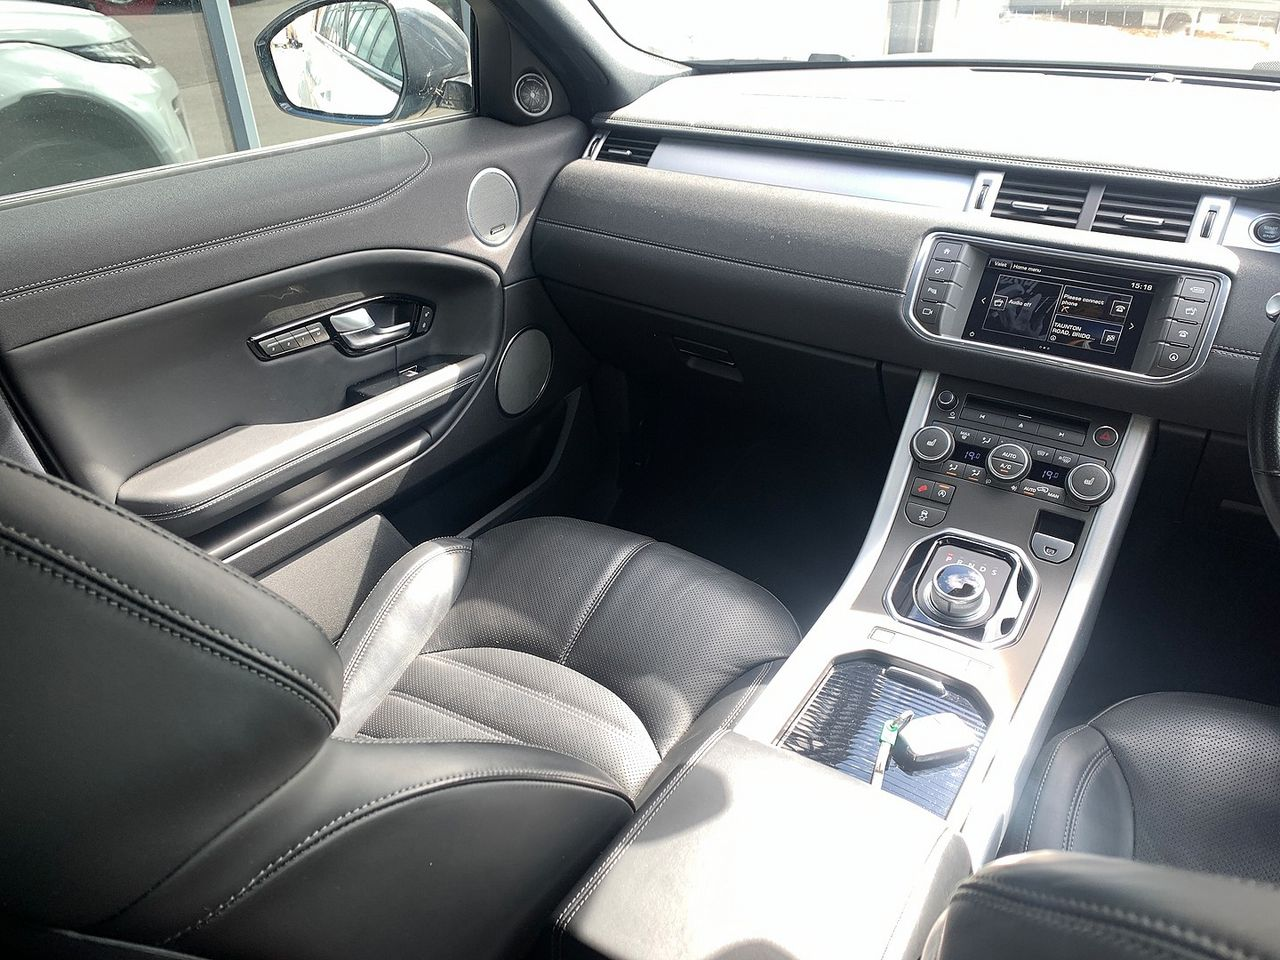 2015 LAND ROVER Range Rover Evoque Td4 180hp HSE Dynamic 9Sp Auto 4WD - Picture 9 of 11